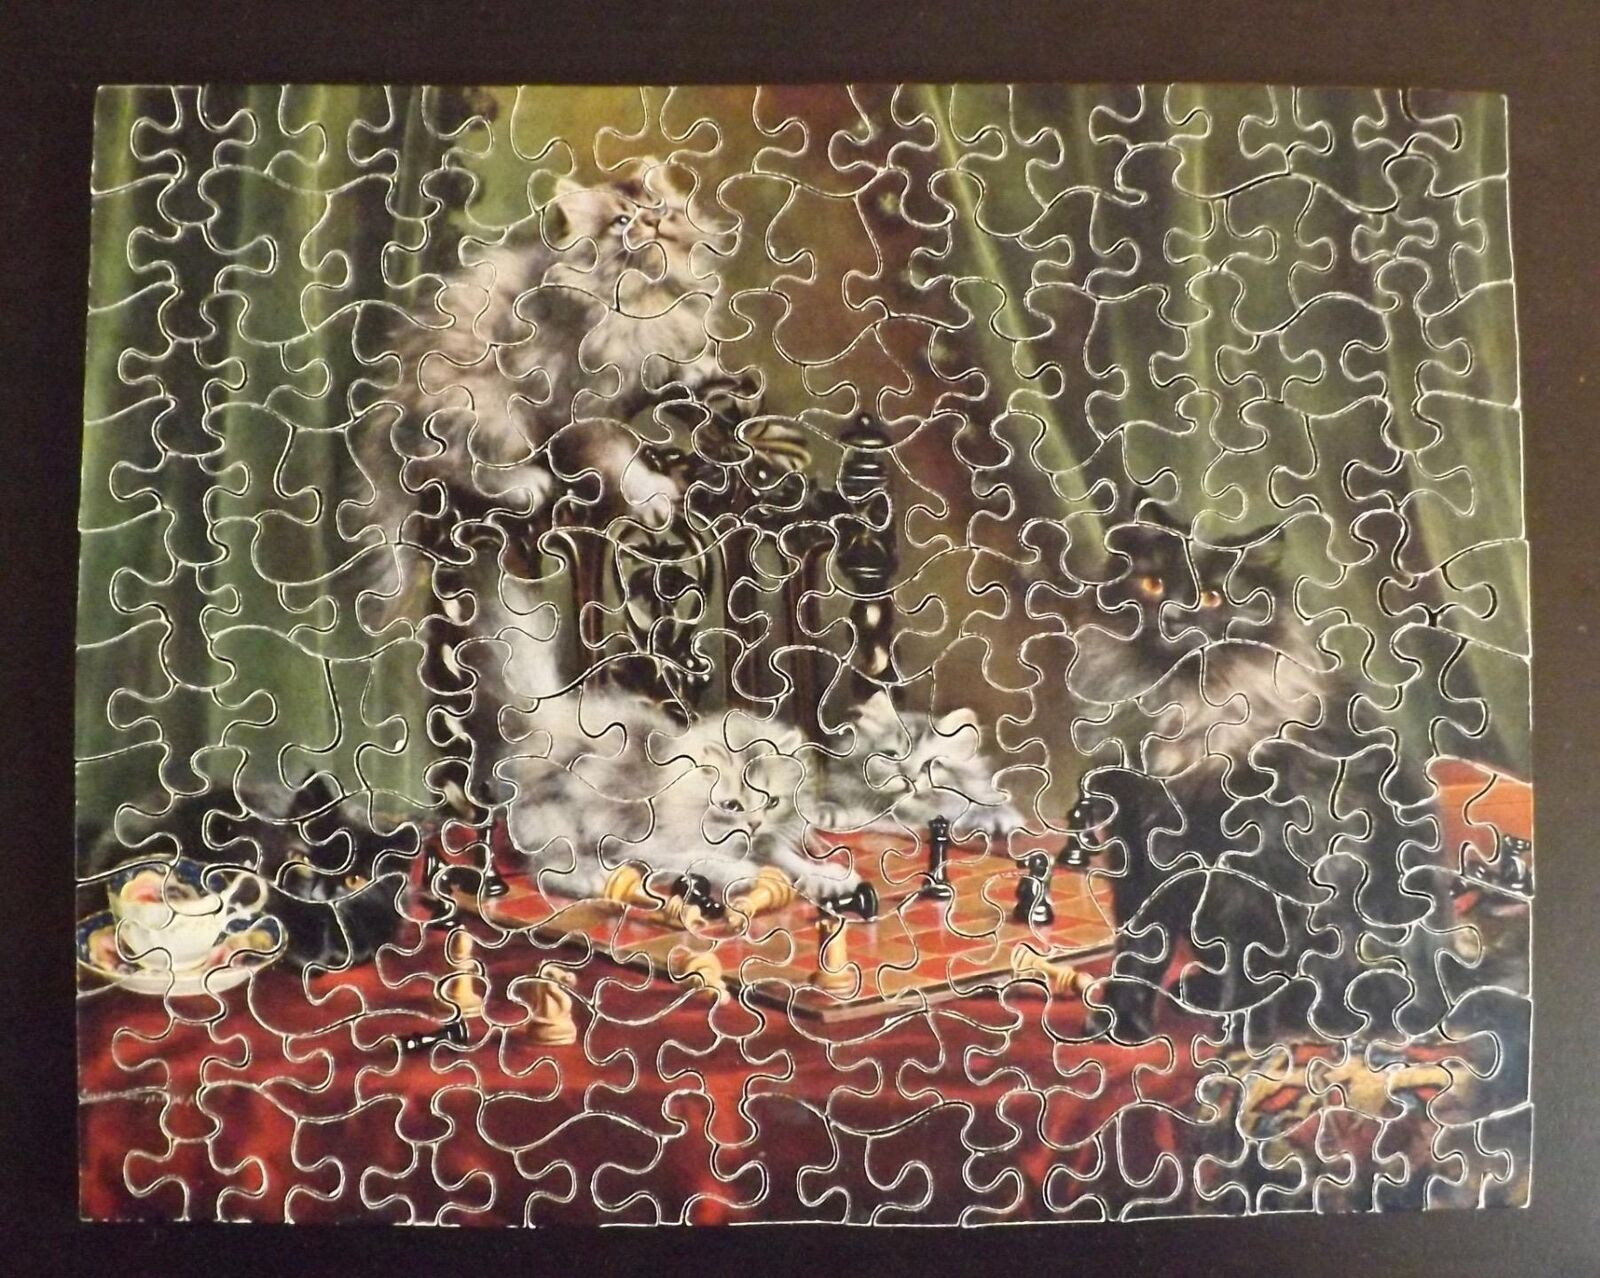 J. SALMON Vintage Wooden Jigsaw Puzzle 200 Pieces KITTENS & CHESSBOARD J910